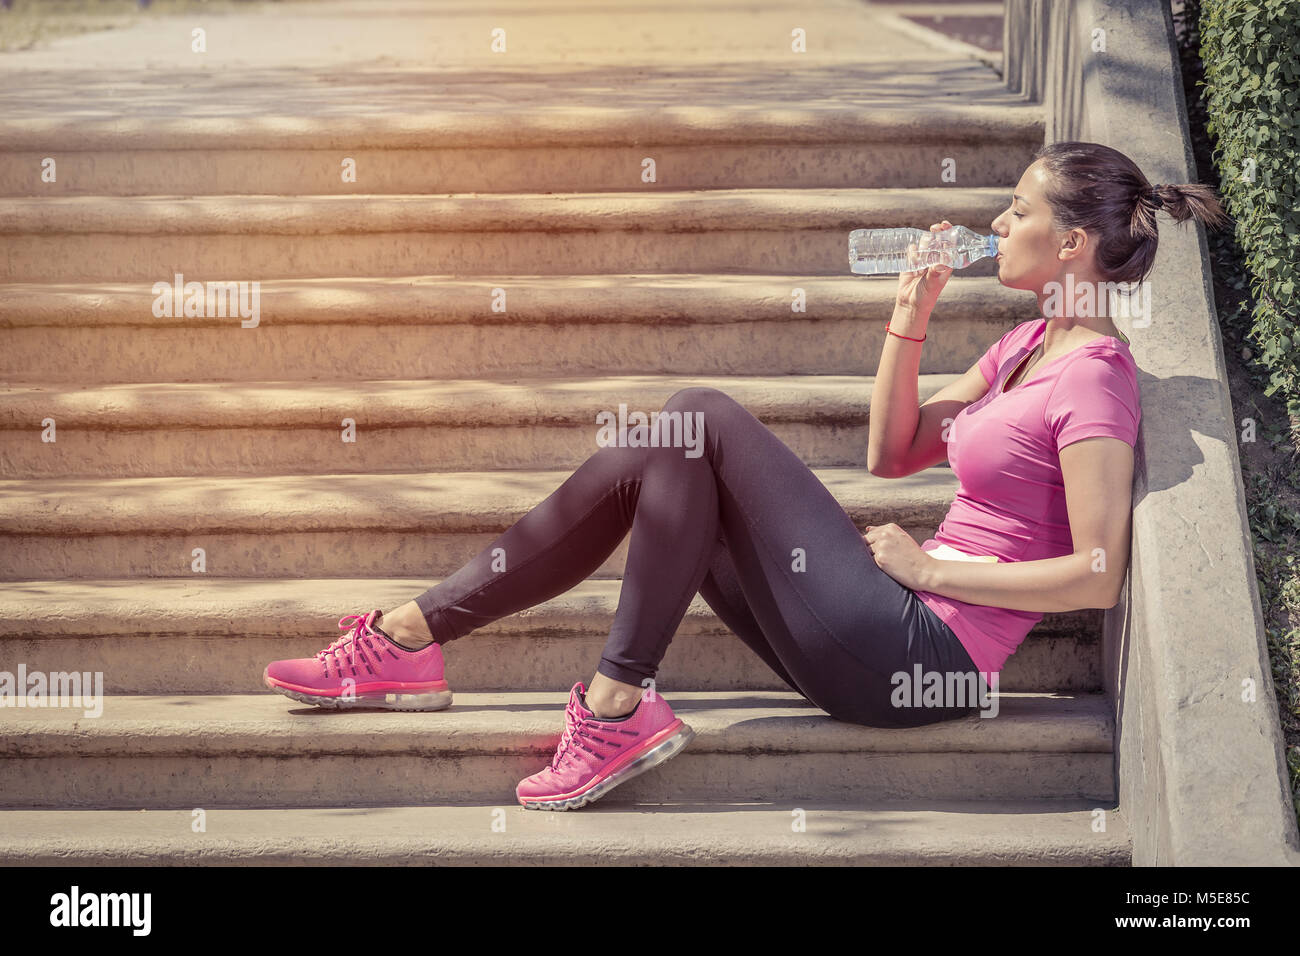 Fitness runner woman drinking water and sitting on staircase. Athlete girl taking a break during run to hydrate - Stock Image